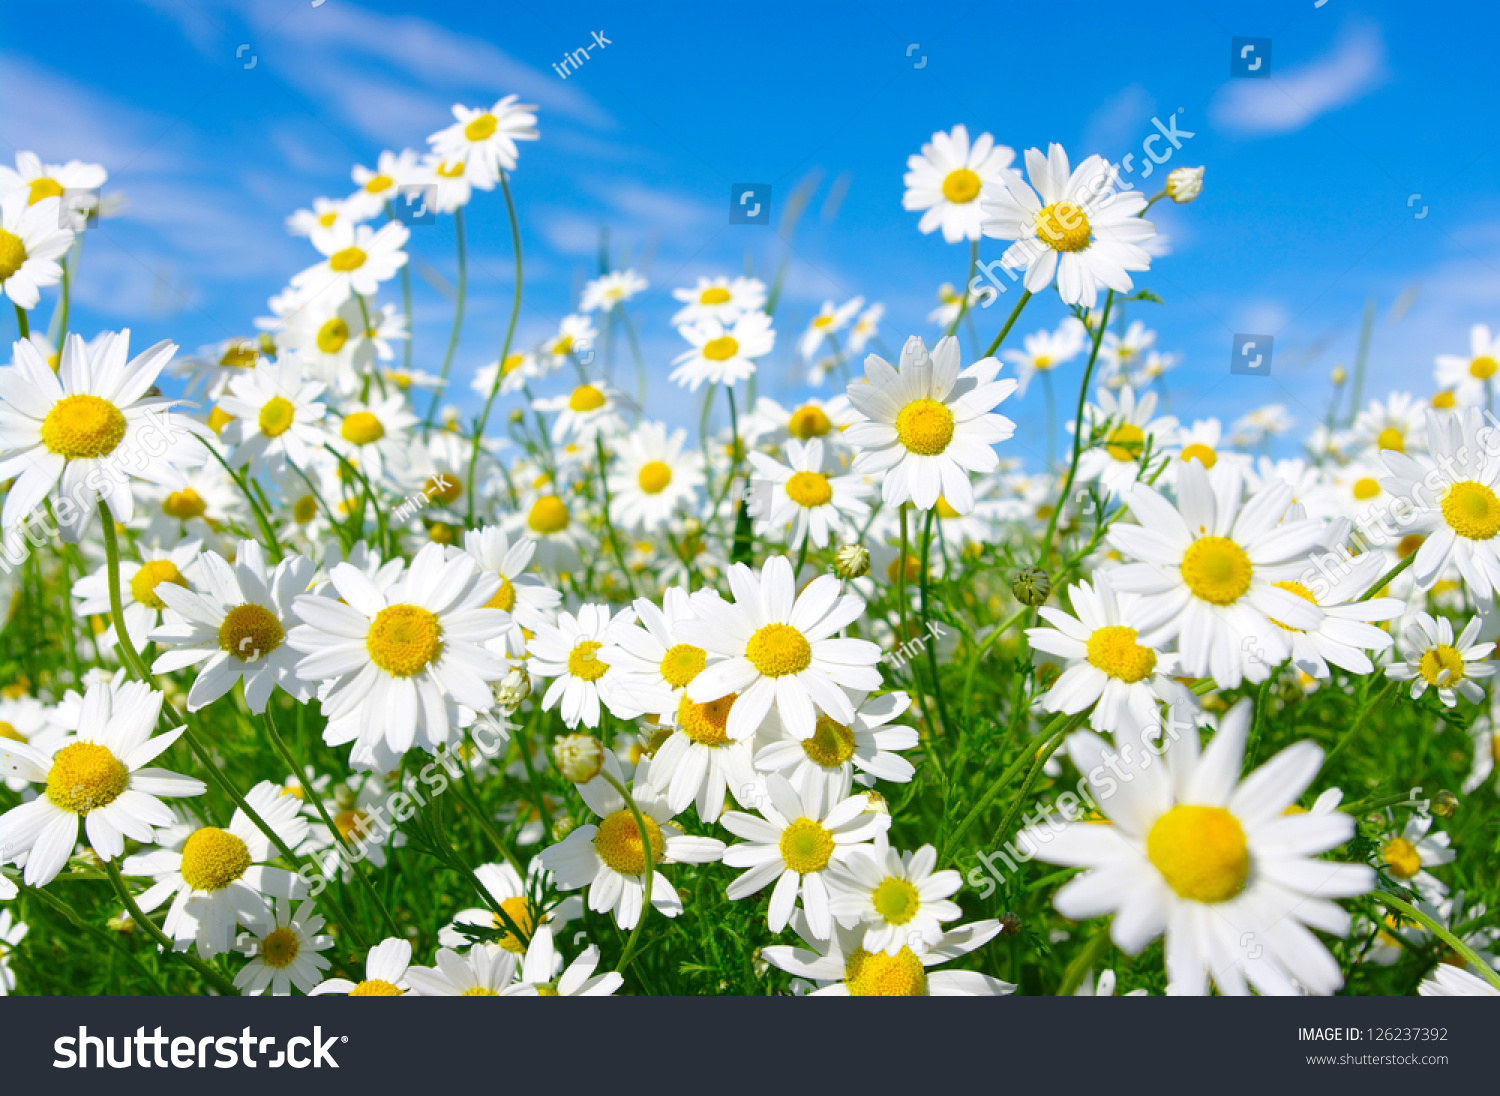 white daisies on blue sky background stock photo, Beautiful flower